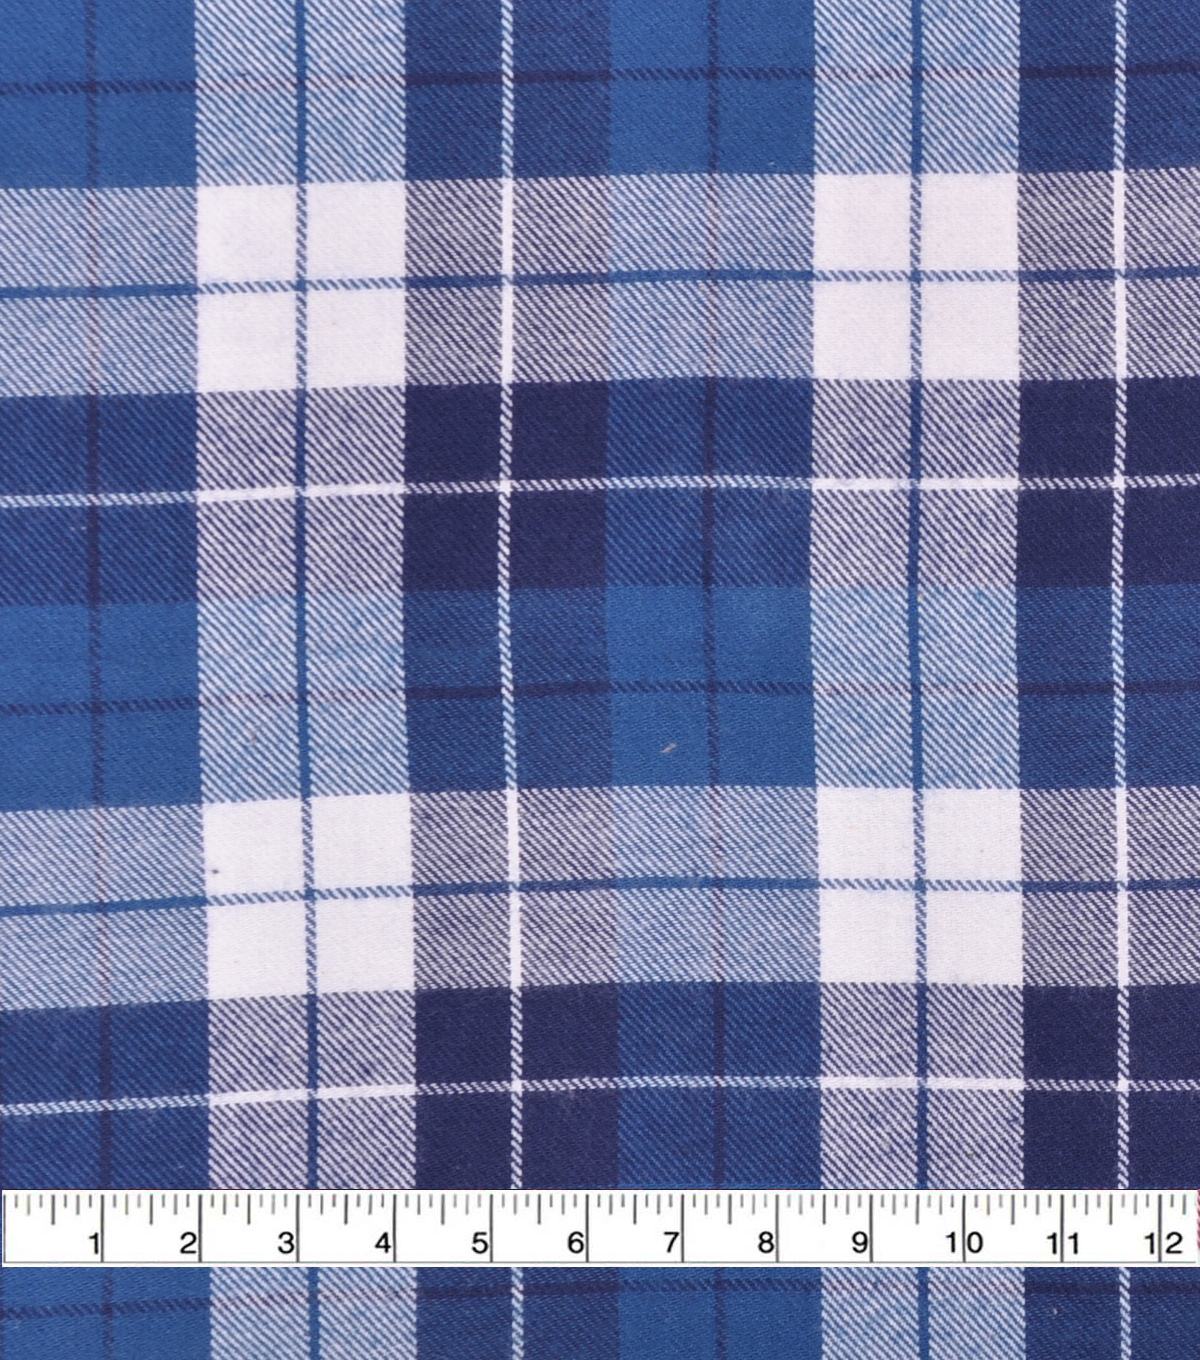 Flannel Shirting Fabric-Navy Teal White Squares Plaid